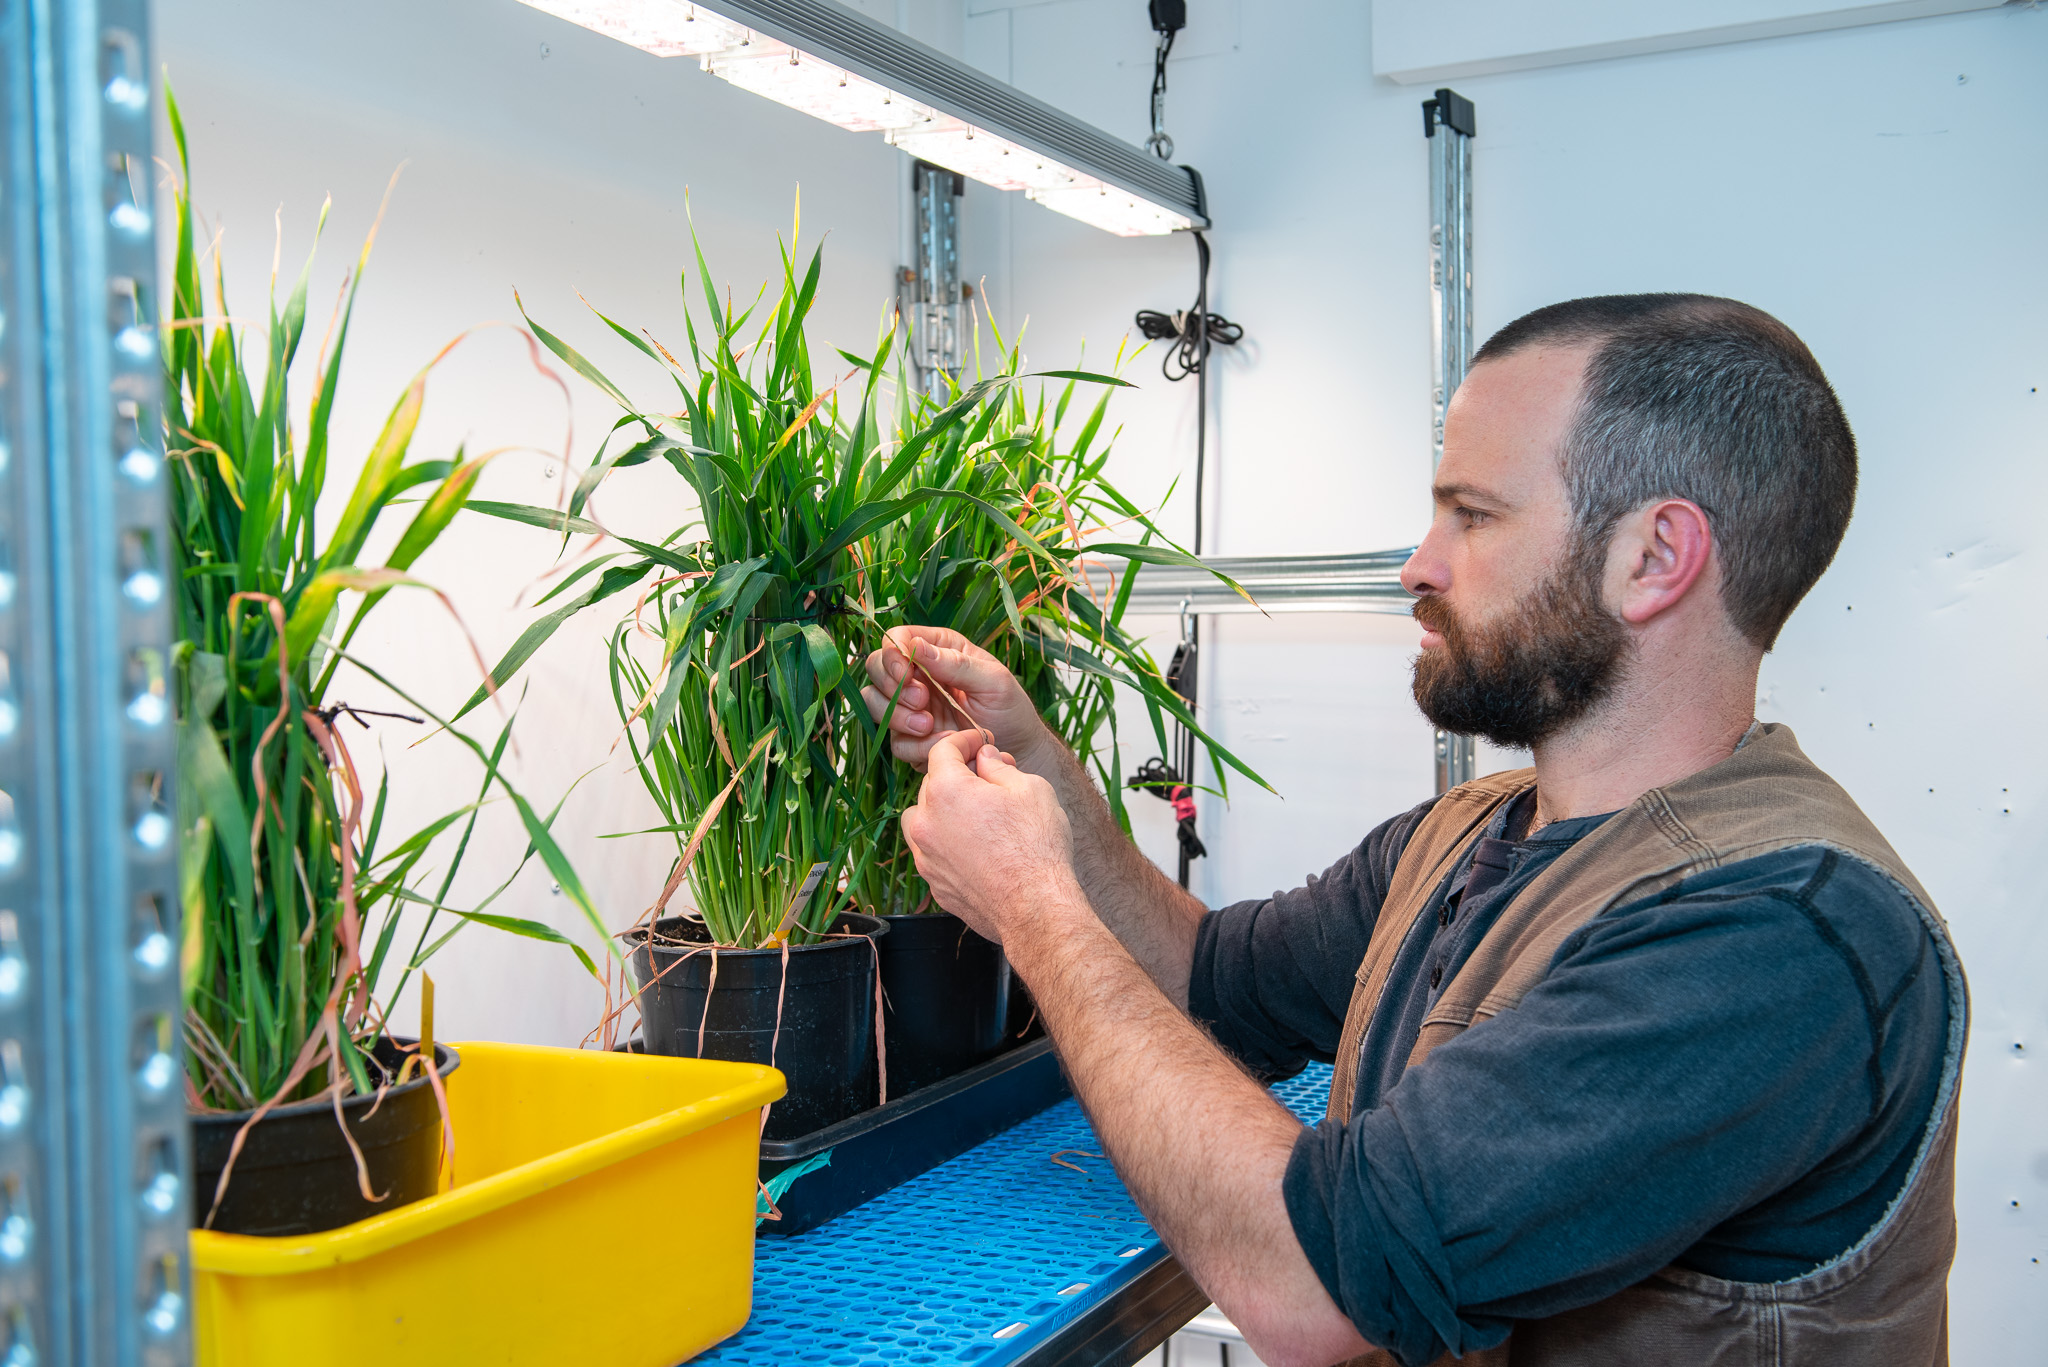 Student in the plant lab